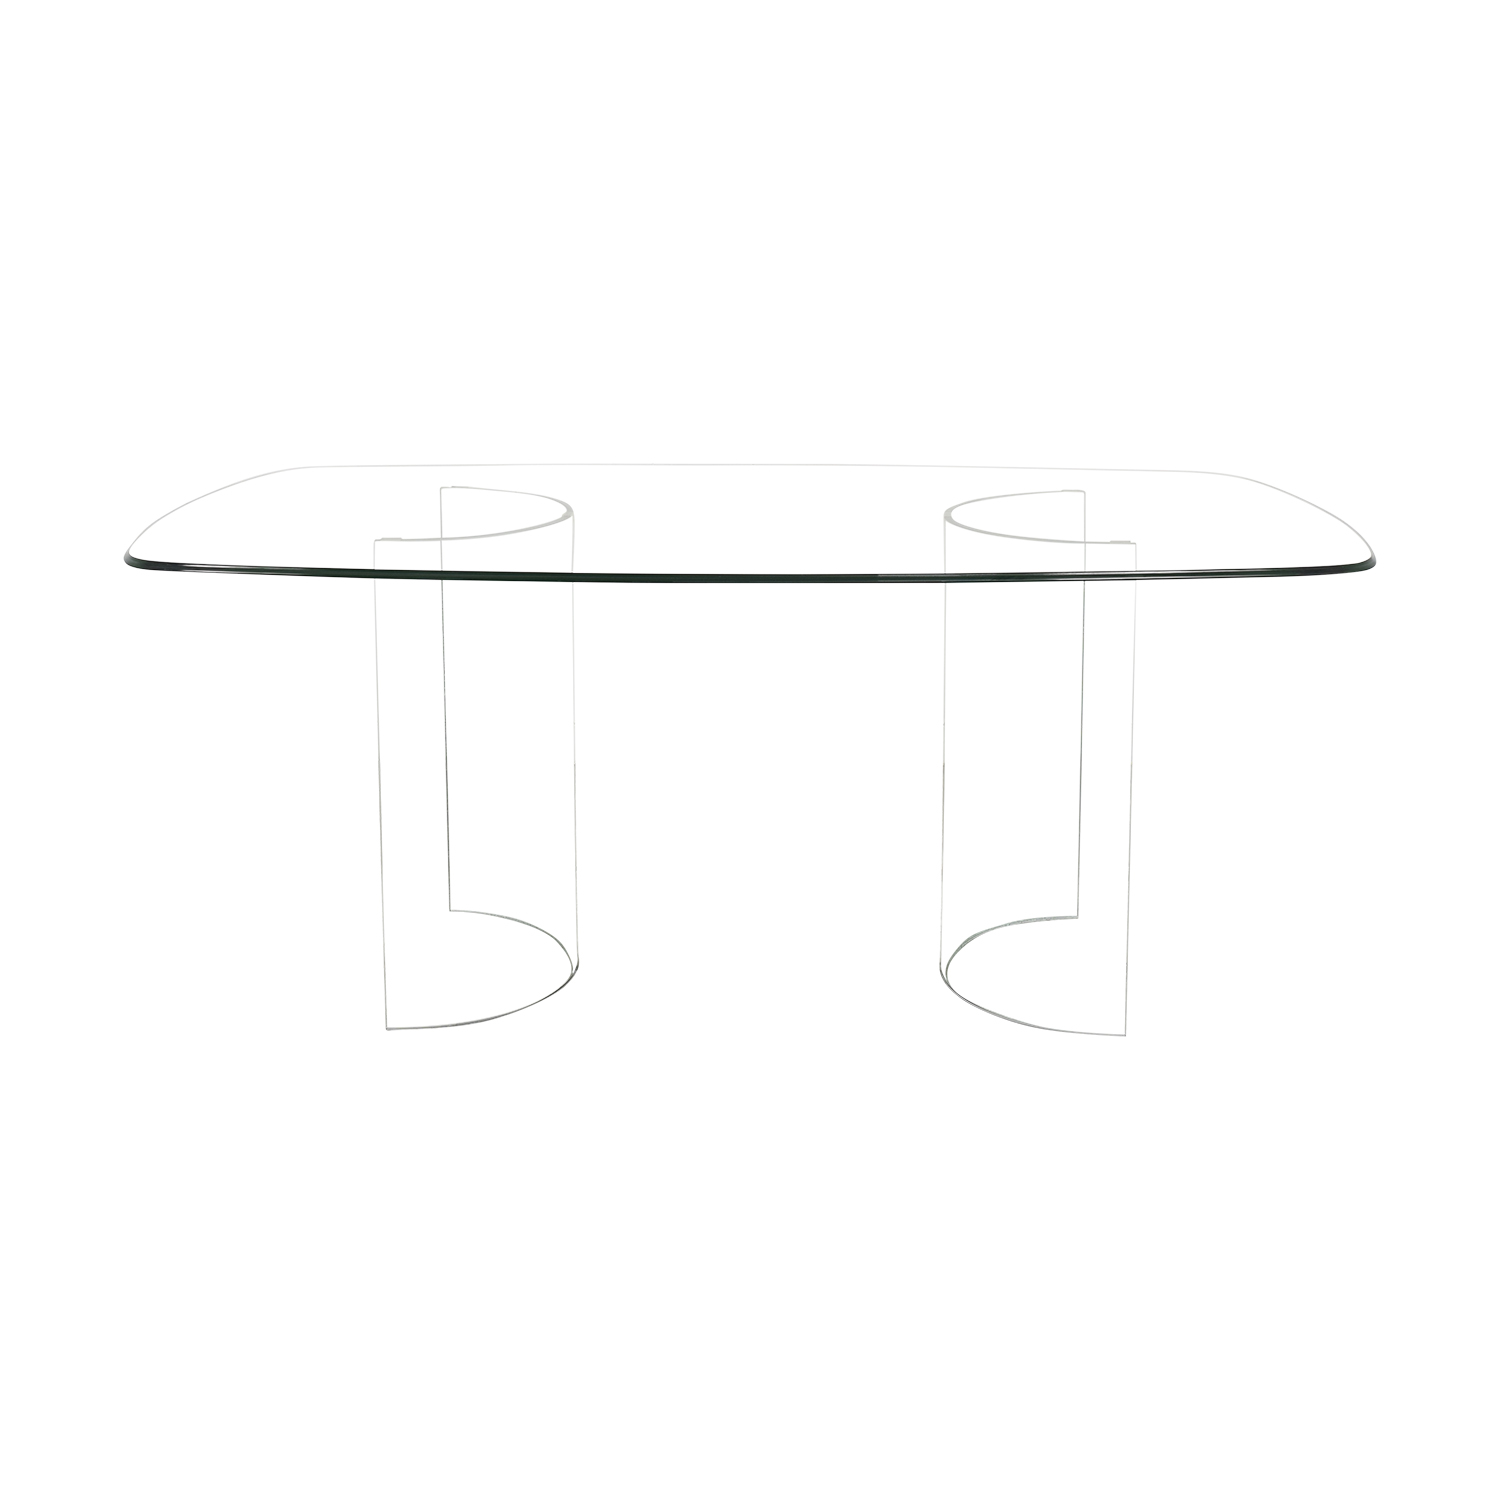 Raymour & Flanigan Raymour & Flanigan Beveled Tempered Glass Dining Table for sale